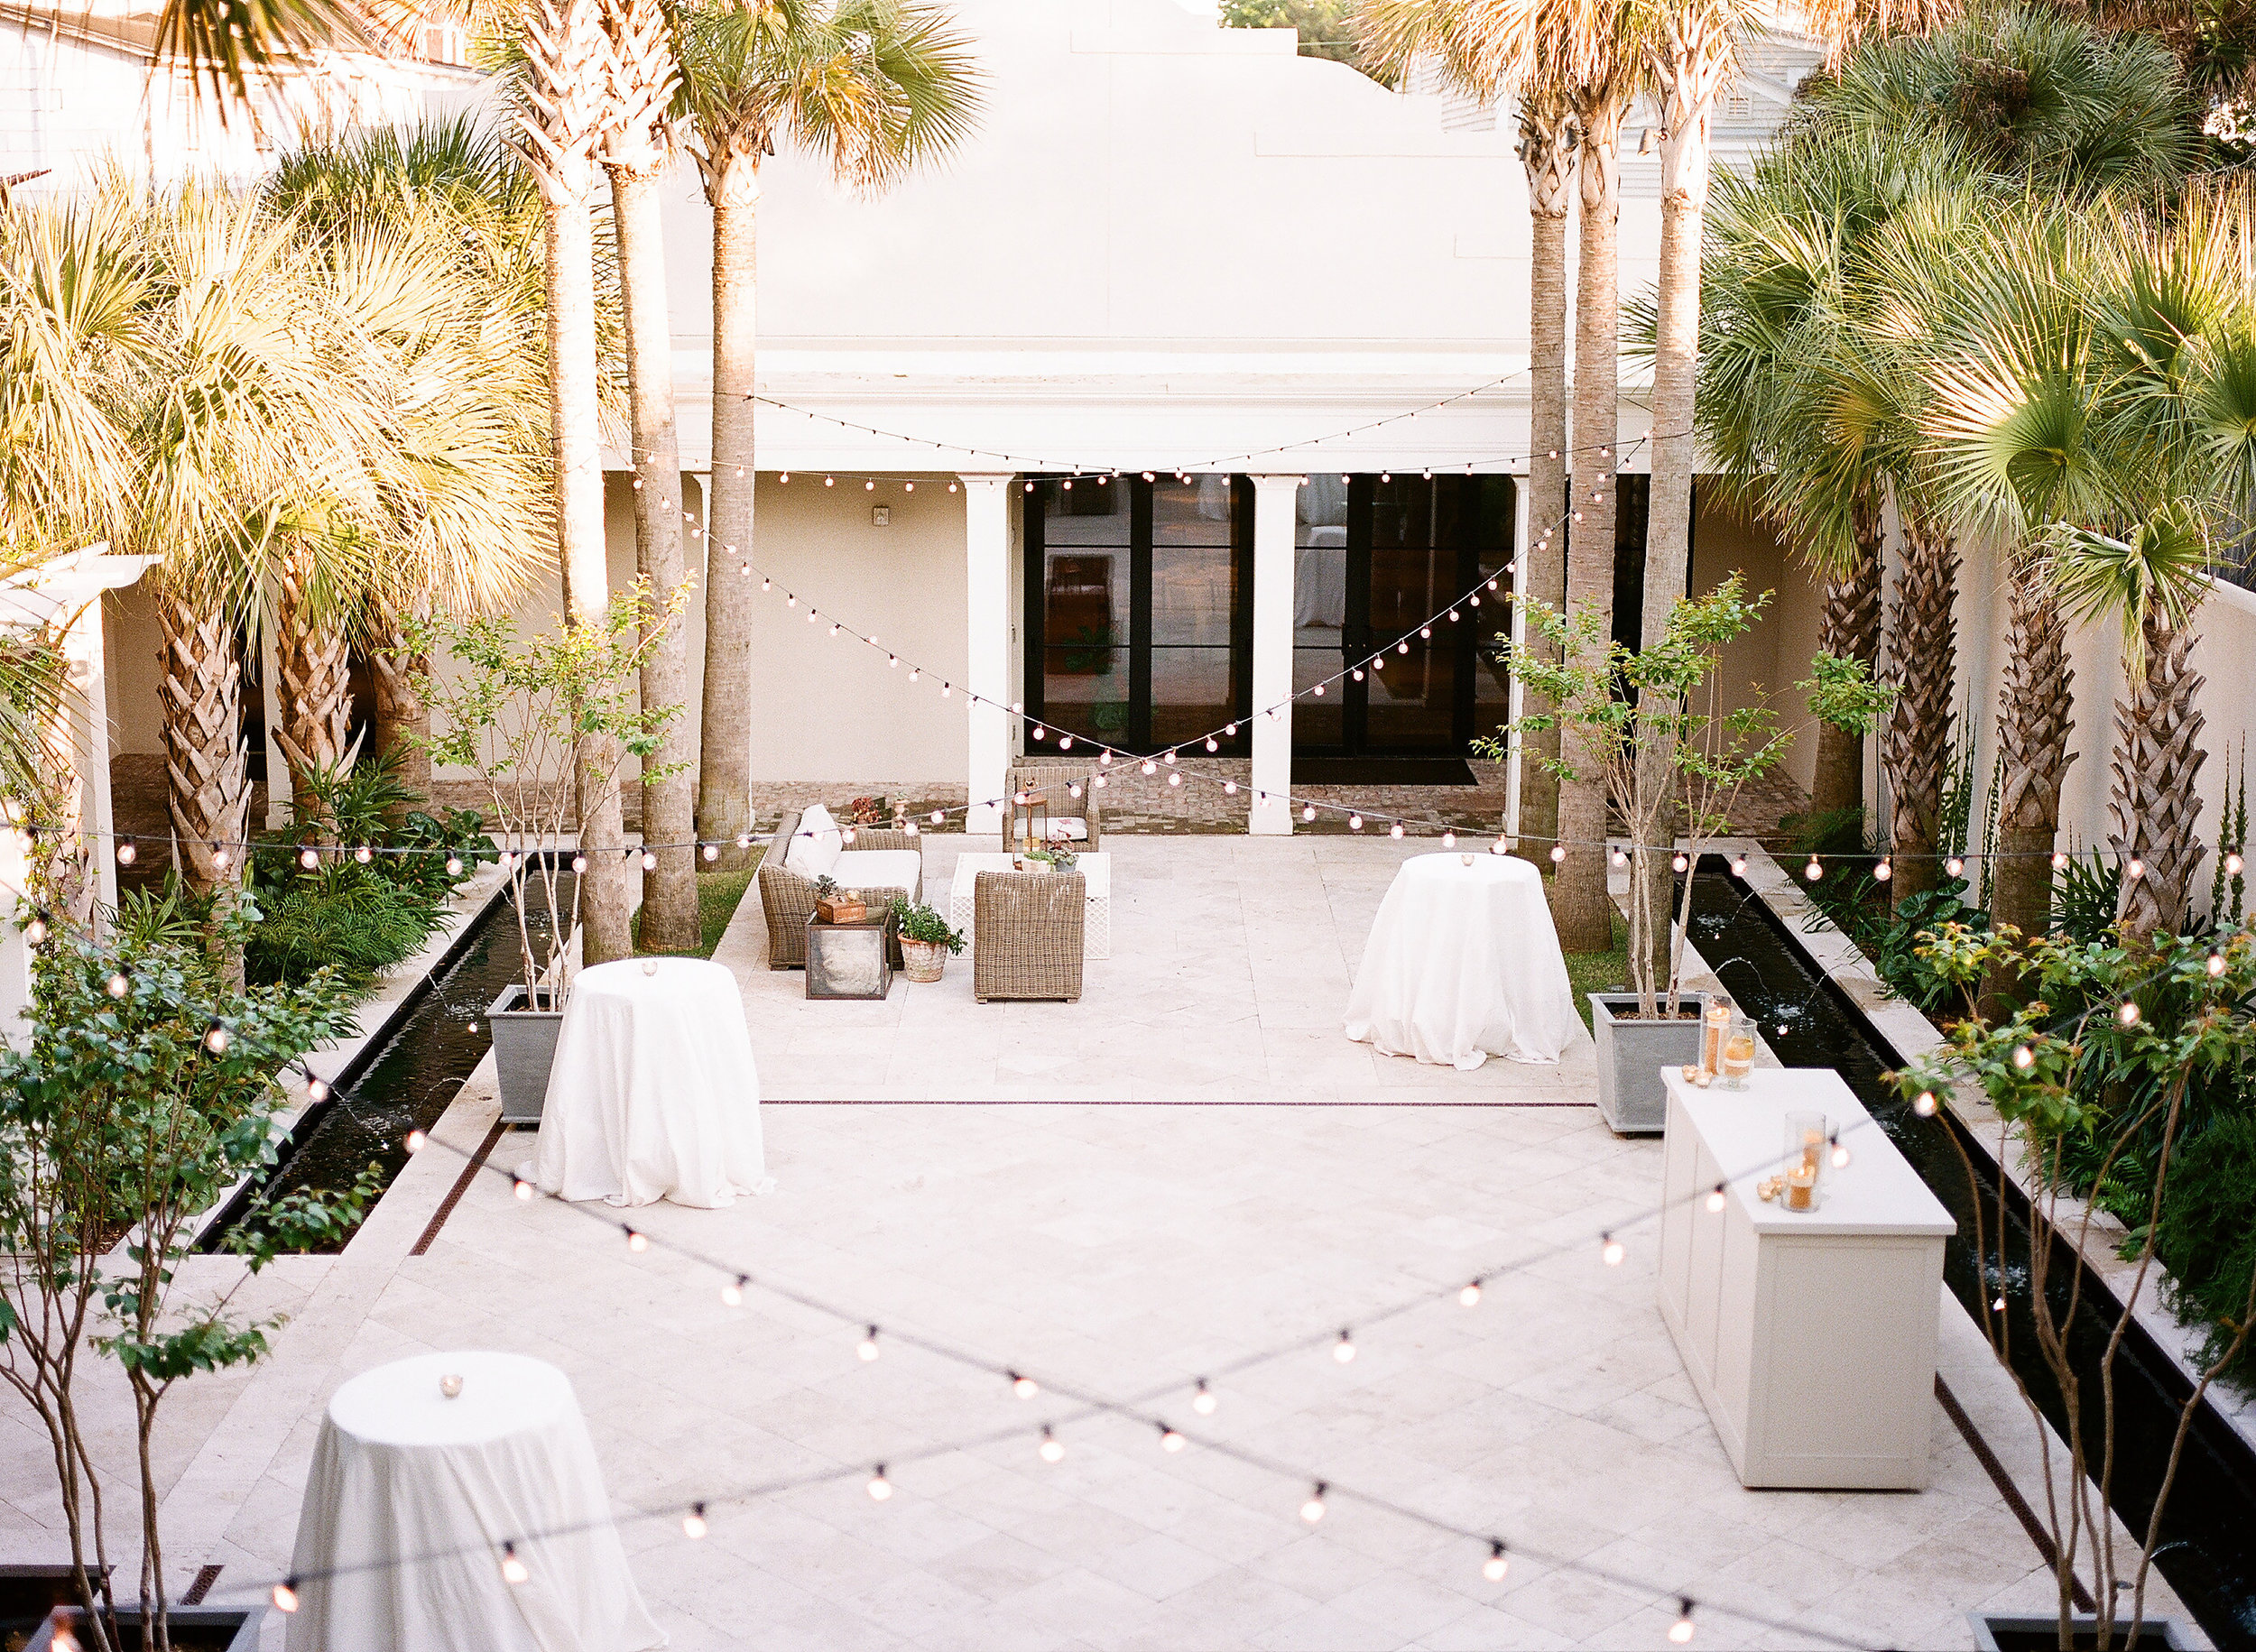 Photography by Henry Photographs ||Planning by Toast of the Coast